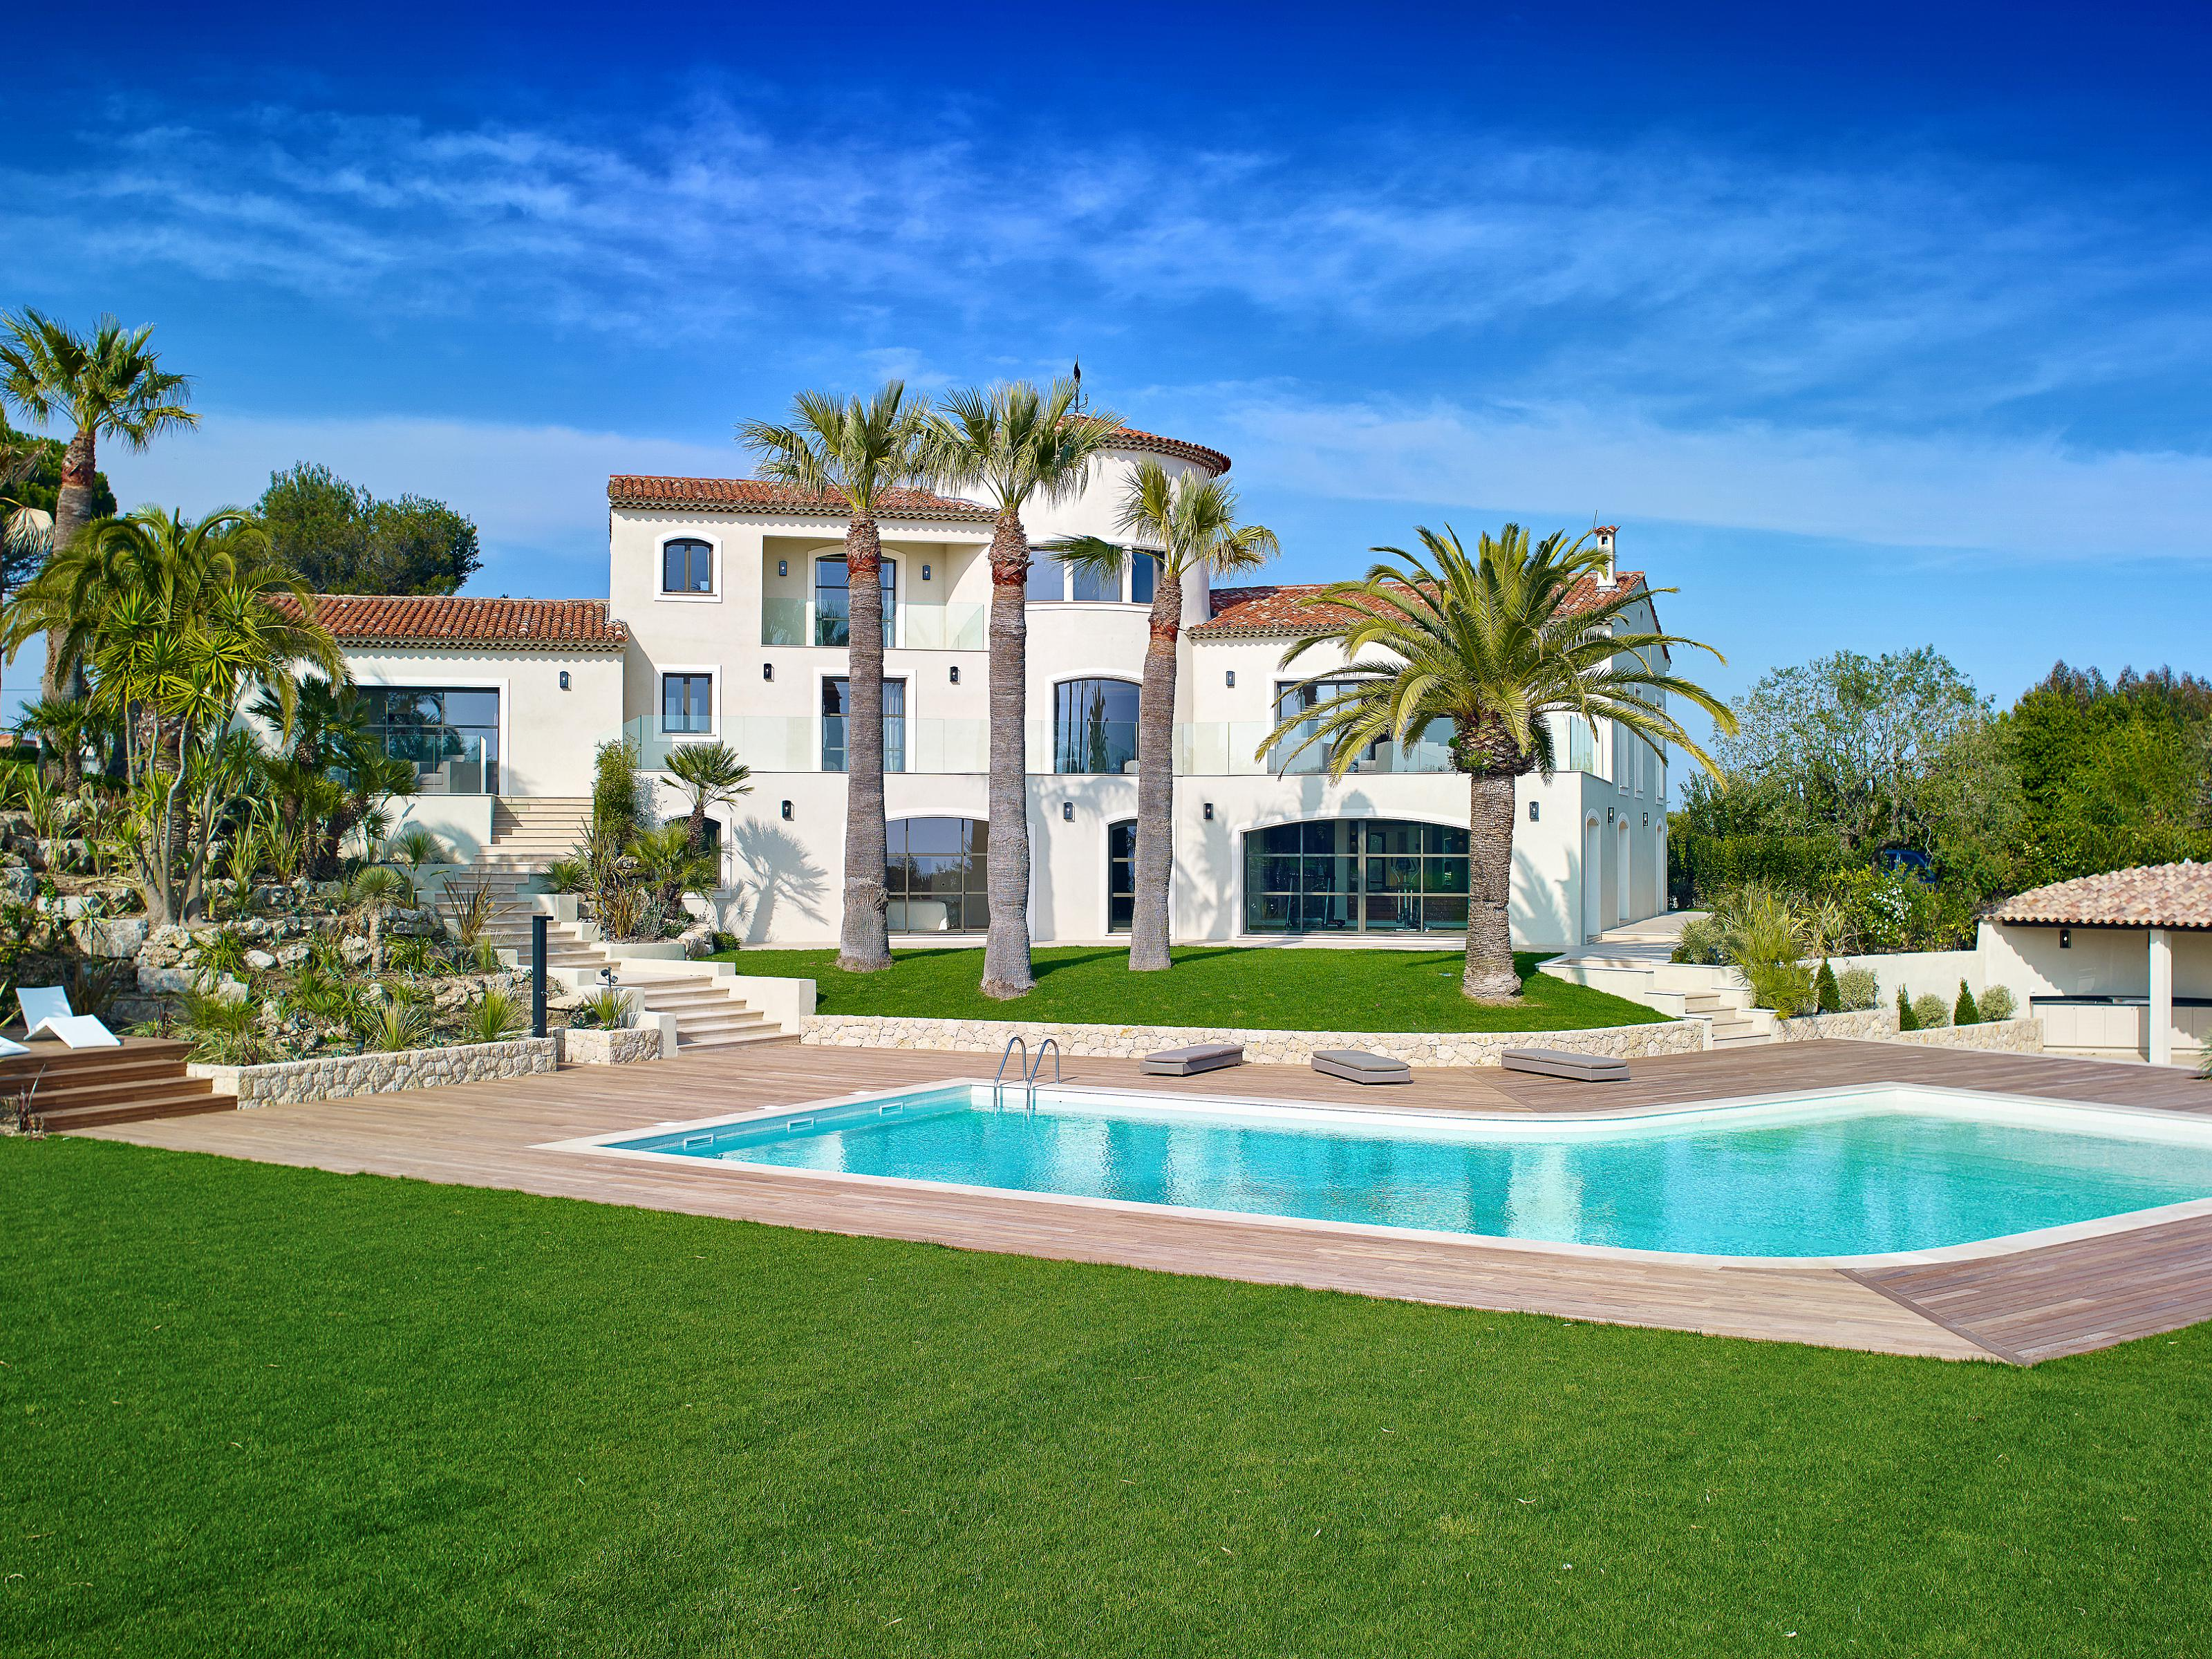 Single Family Home for Sale at New villa with views over the sea and the Lérins Islands Cannes Cannes, Provence-Alpes-Cote D'Azur 06400 France